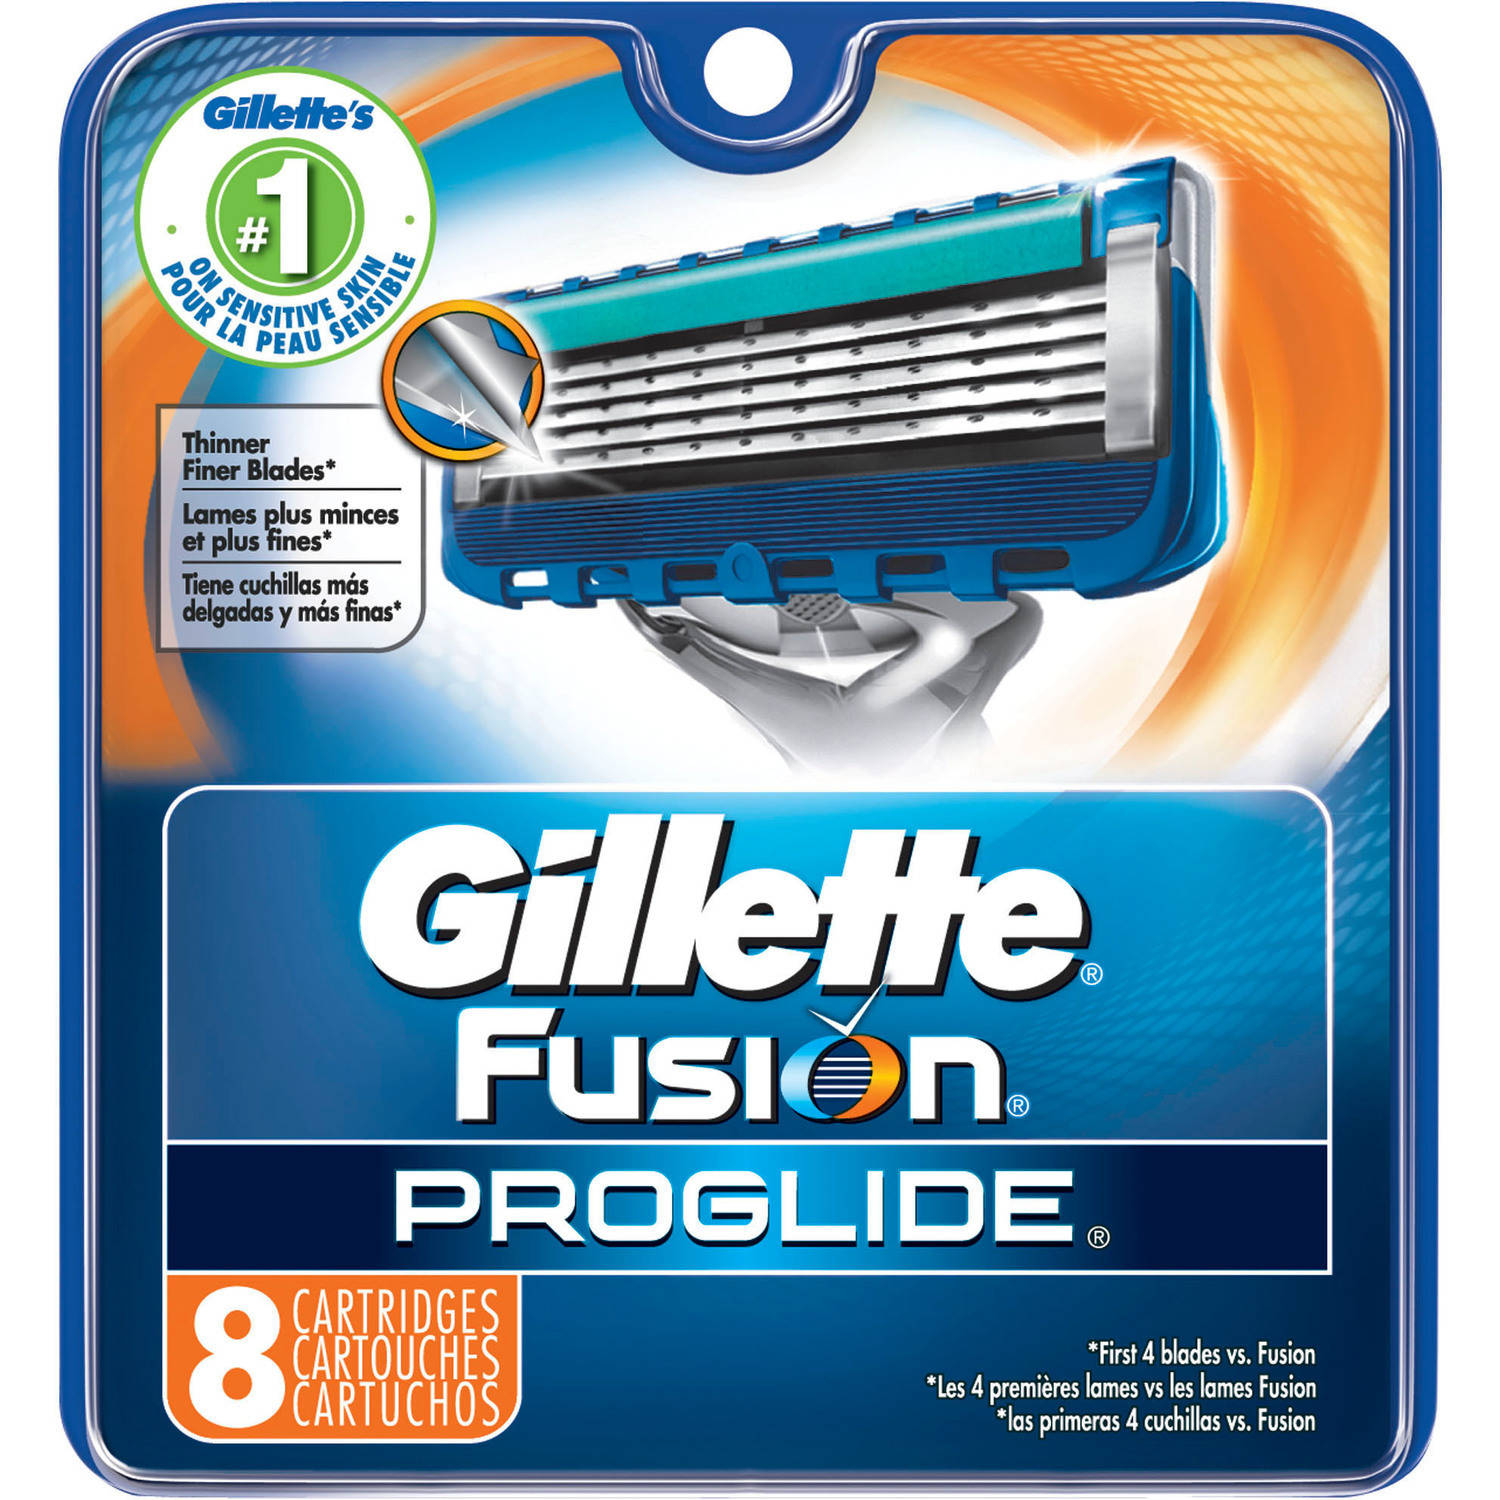 Gillette Fusion ProGlide Razor Cartridge Refills, 8 count